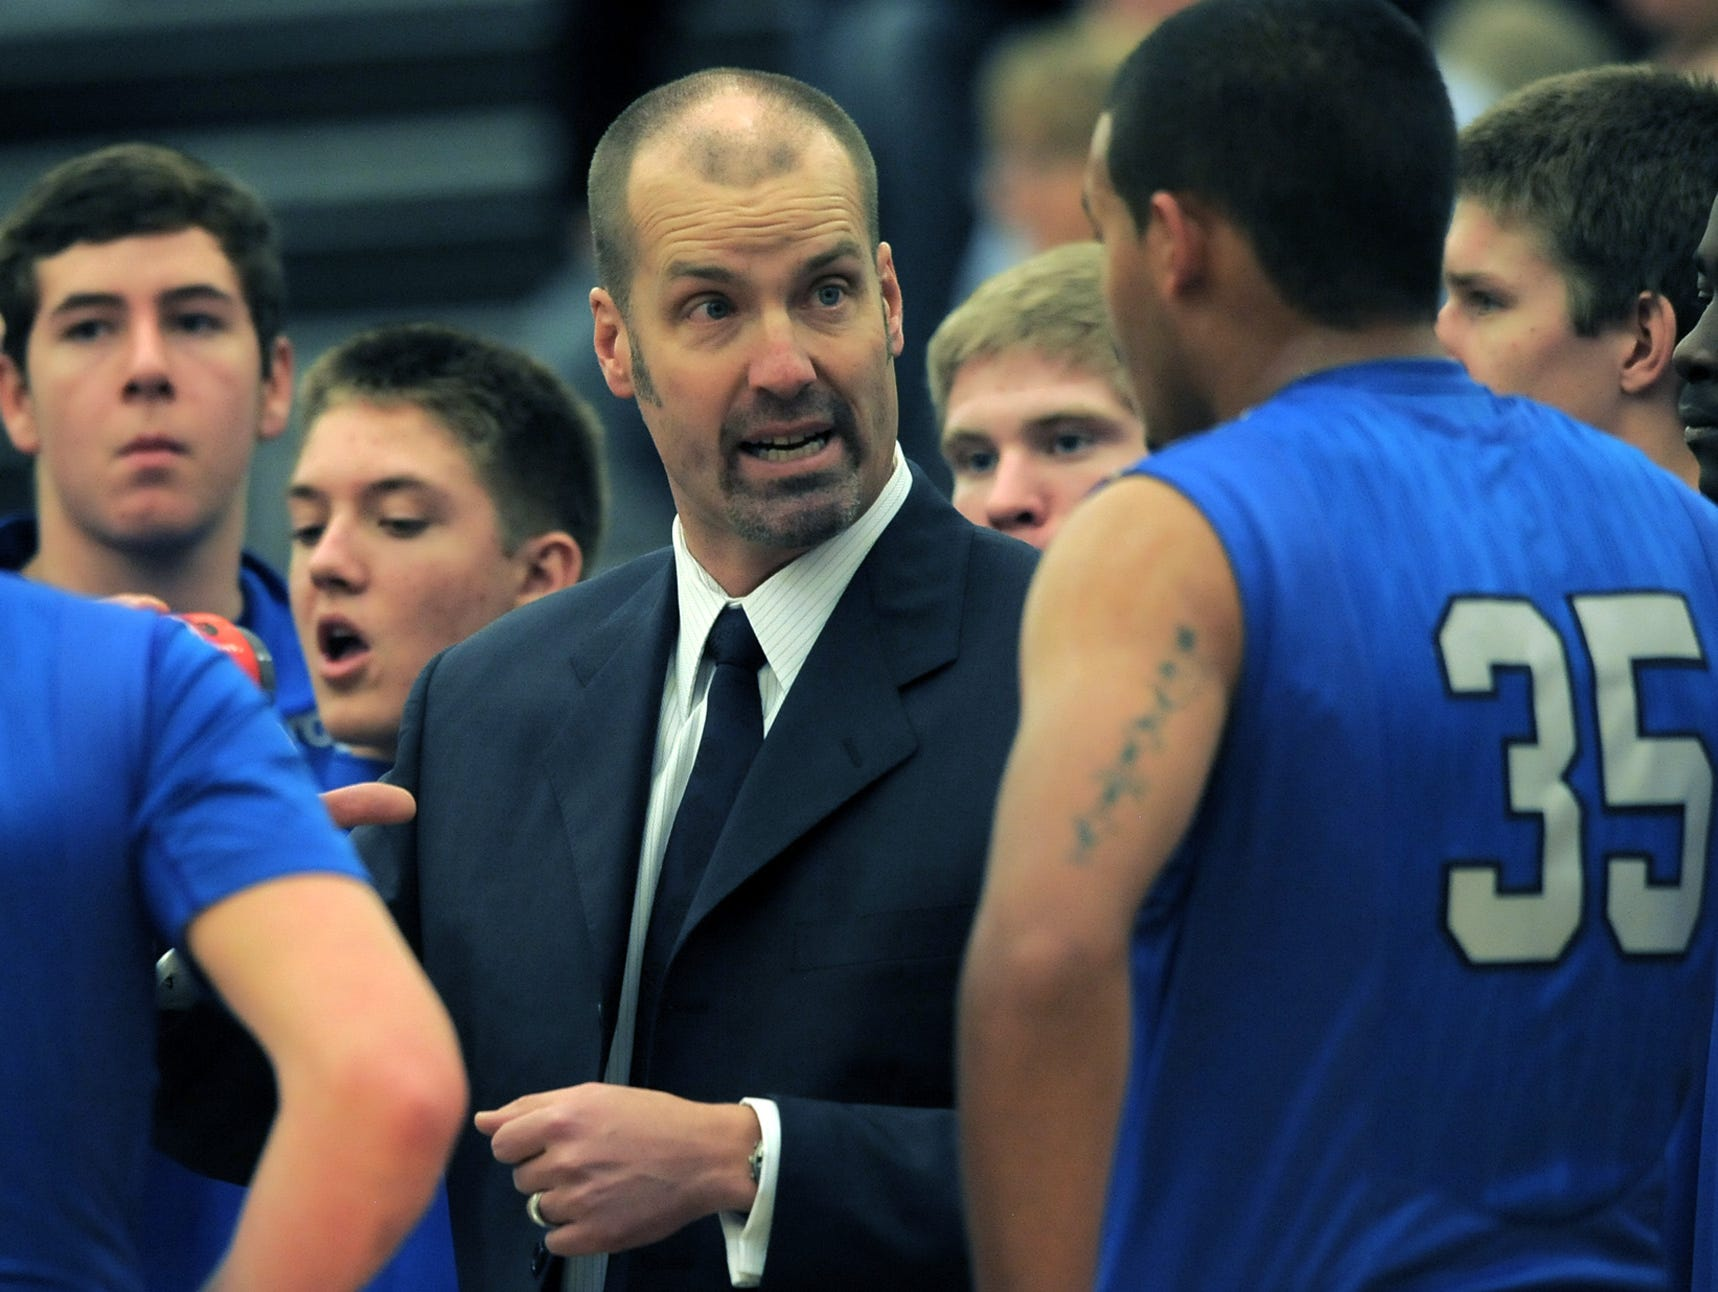 Poudre coach Steve Hawes confers with players during the game against Fossil Ridge at Fossil Ridge High School on December 18, 2012.